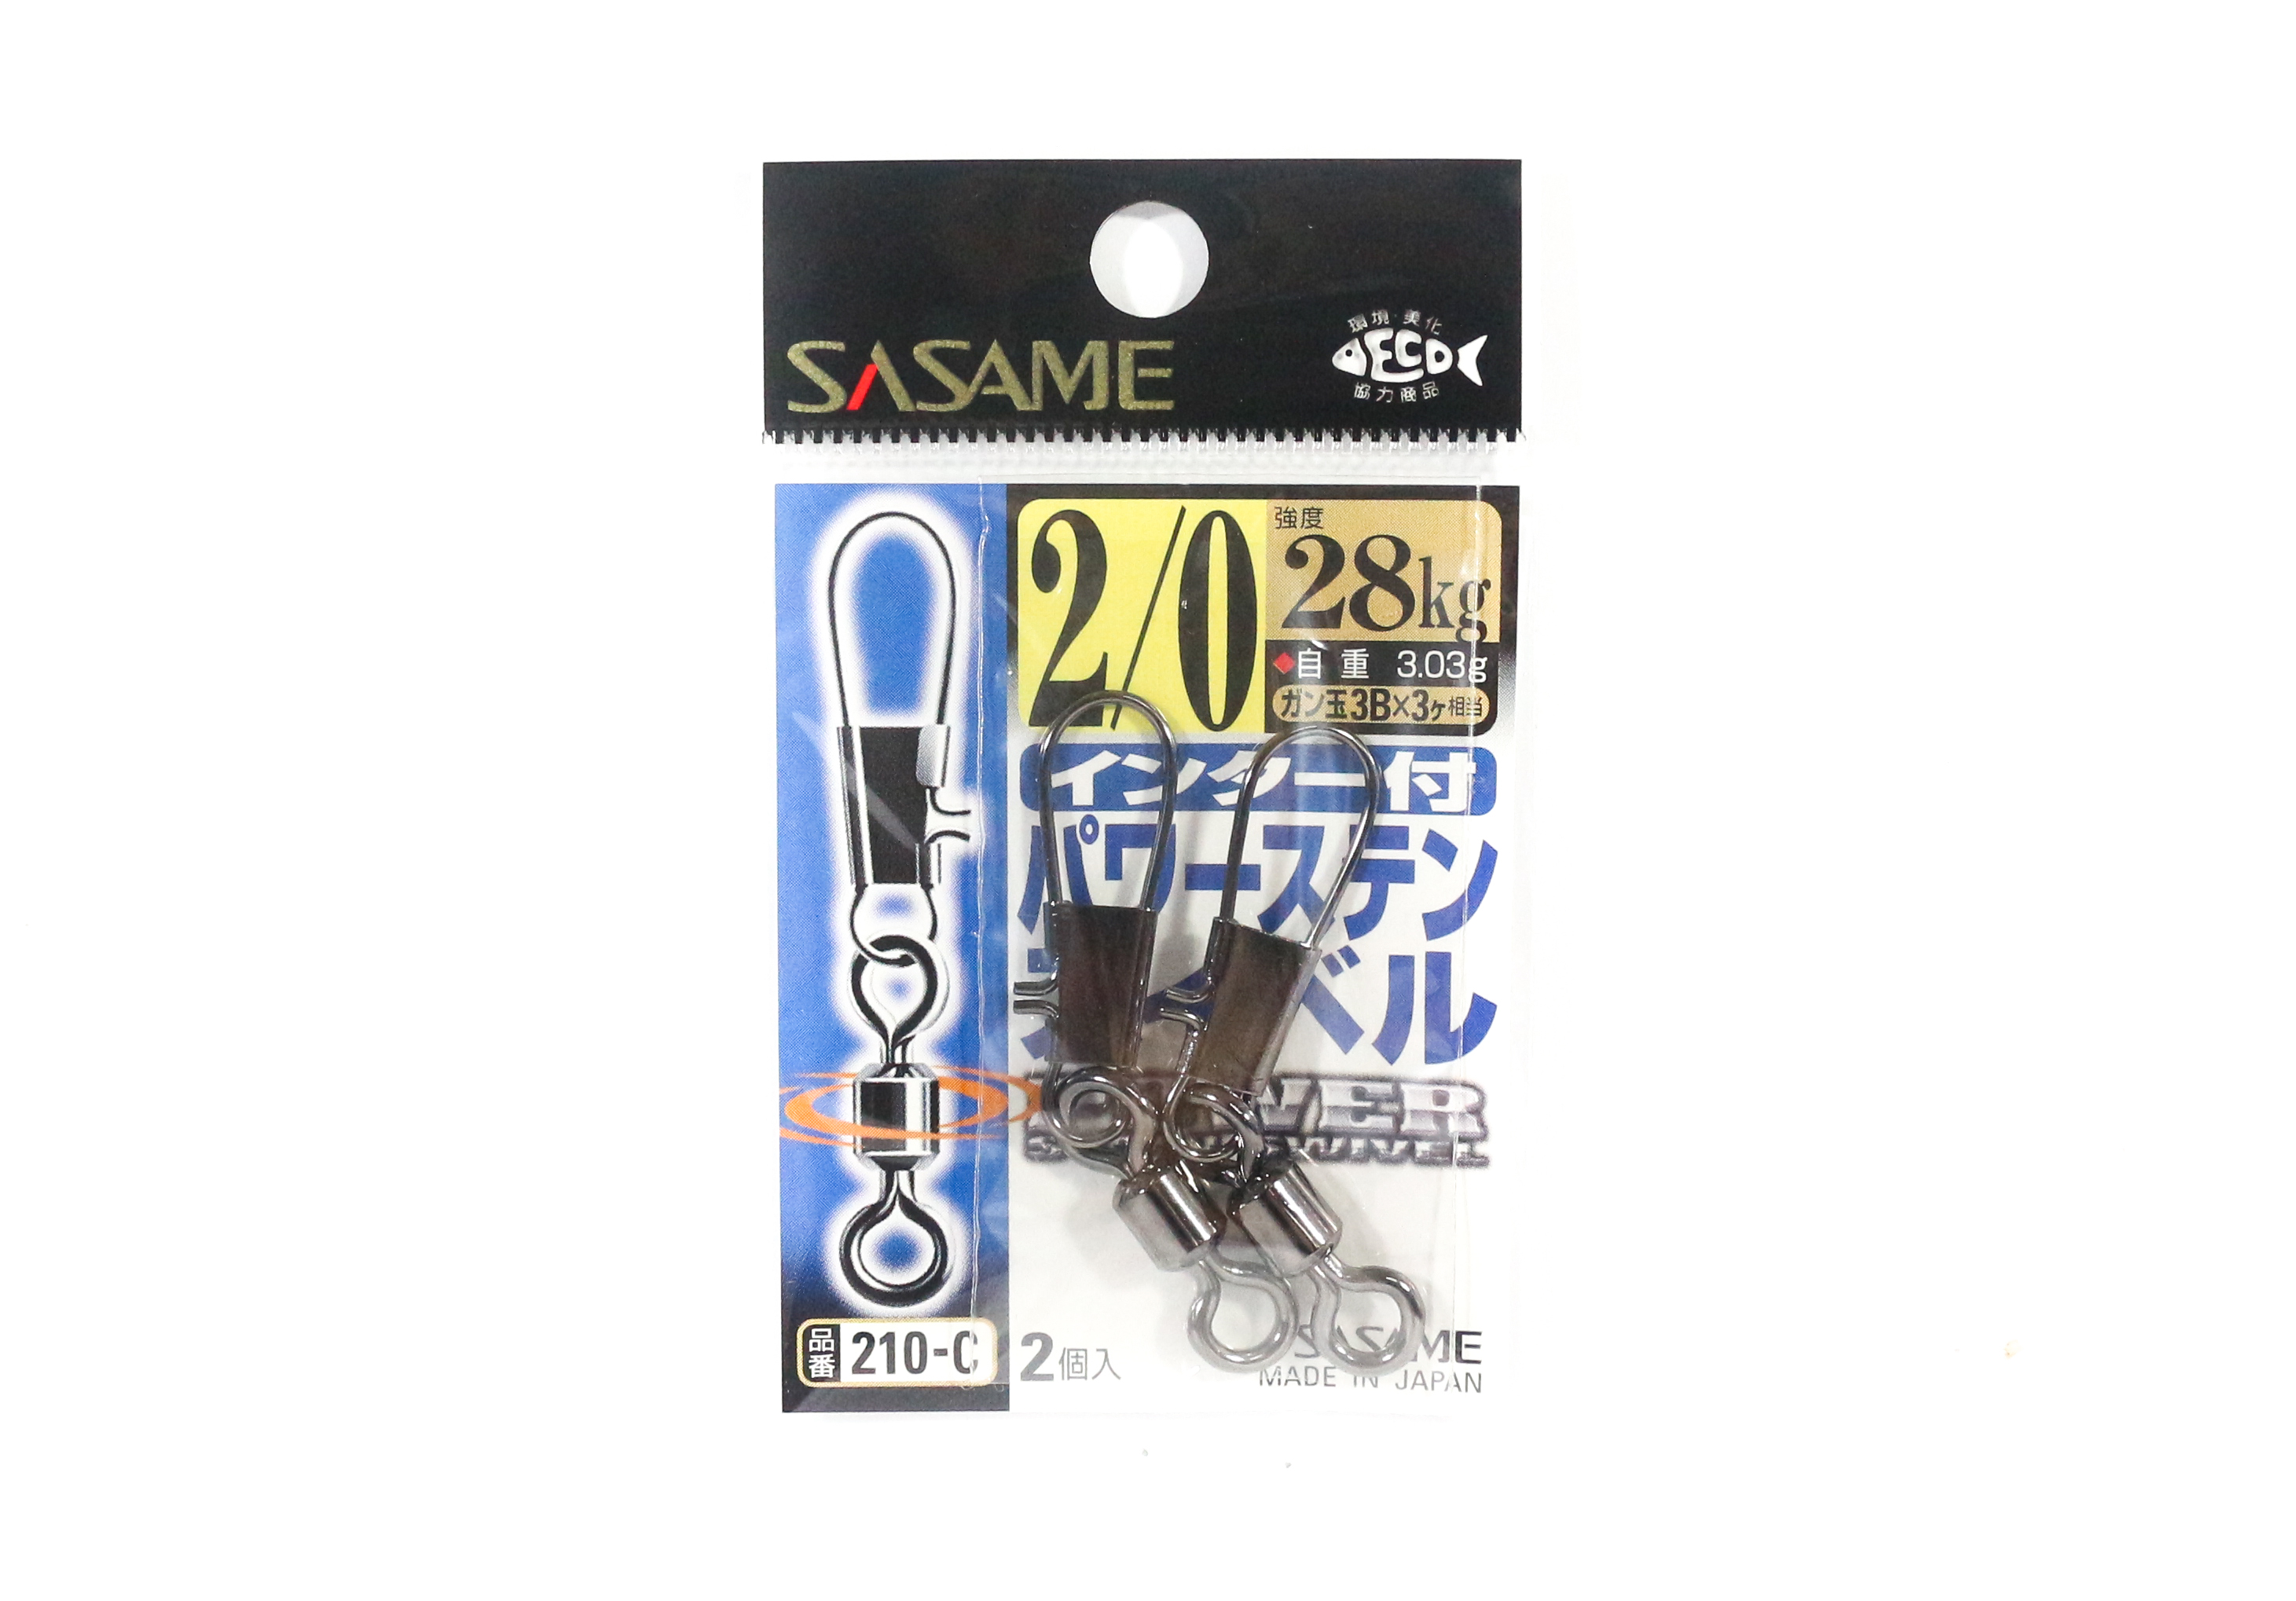 Sasame 210-C Power Stain Snap Swivel Smooth Spin Black Size 2/0 (1249)